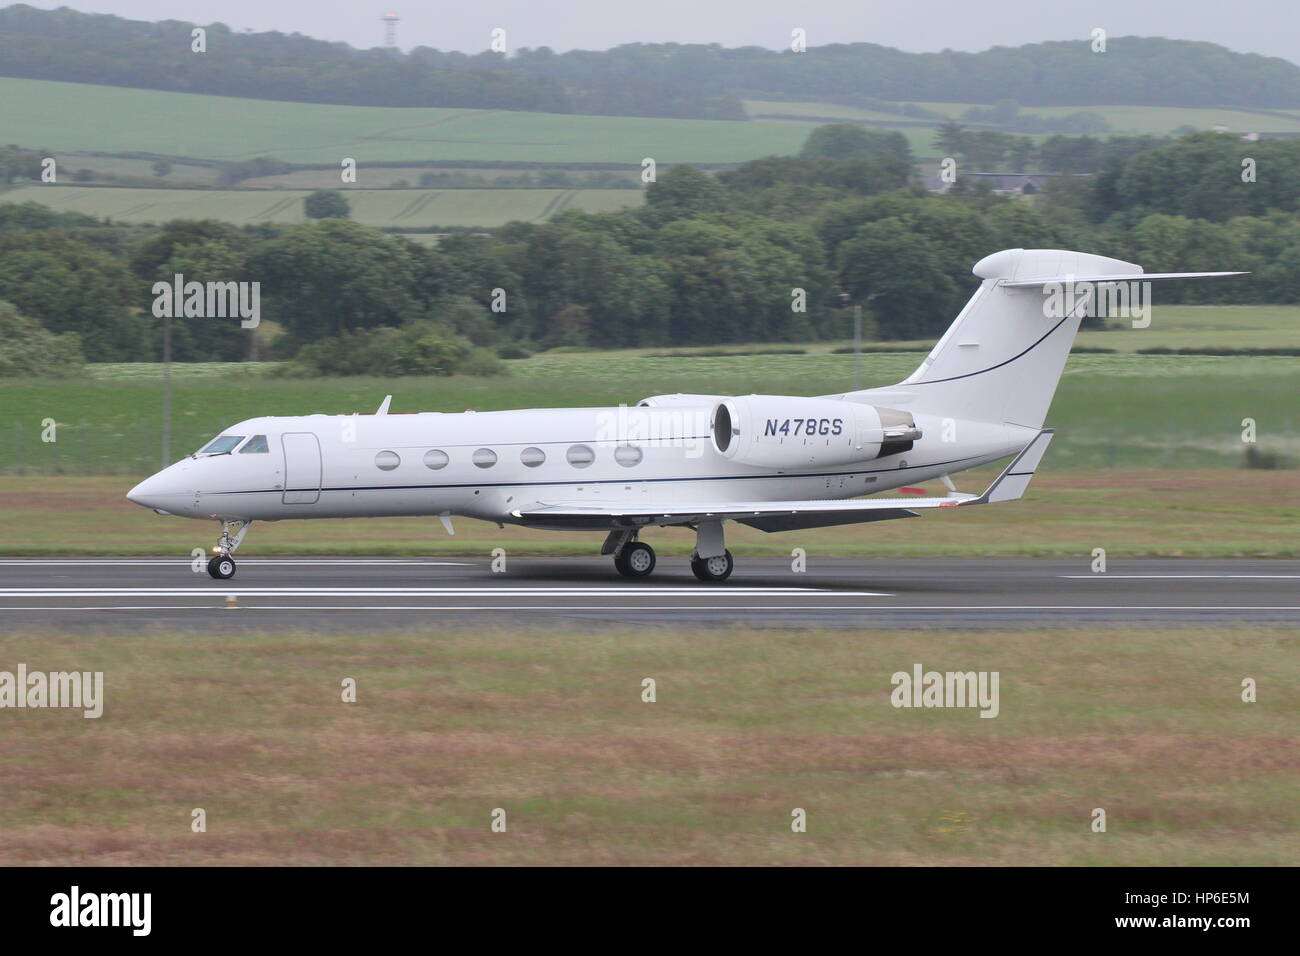 N478GS, a Gulfstream Aerospace G-IV, at Prestwick Airport in Ayrshire. It is thought that this aircraft was used - Stock Image